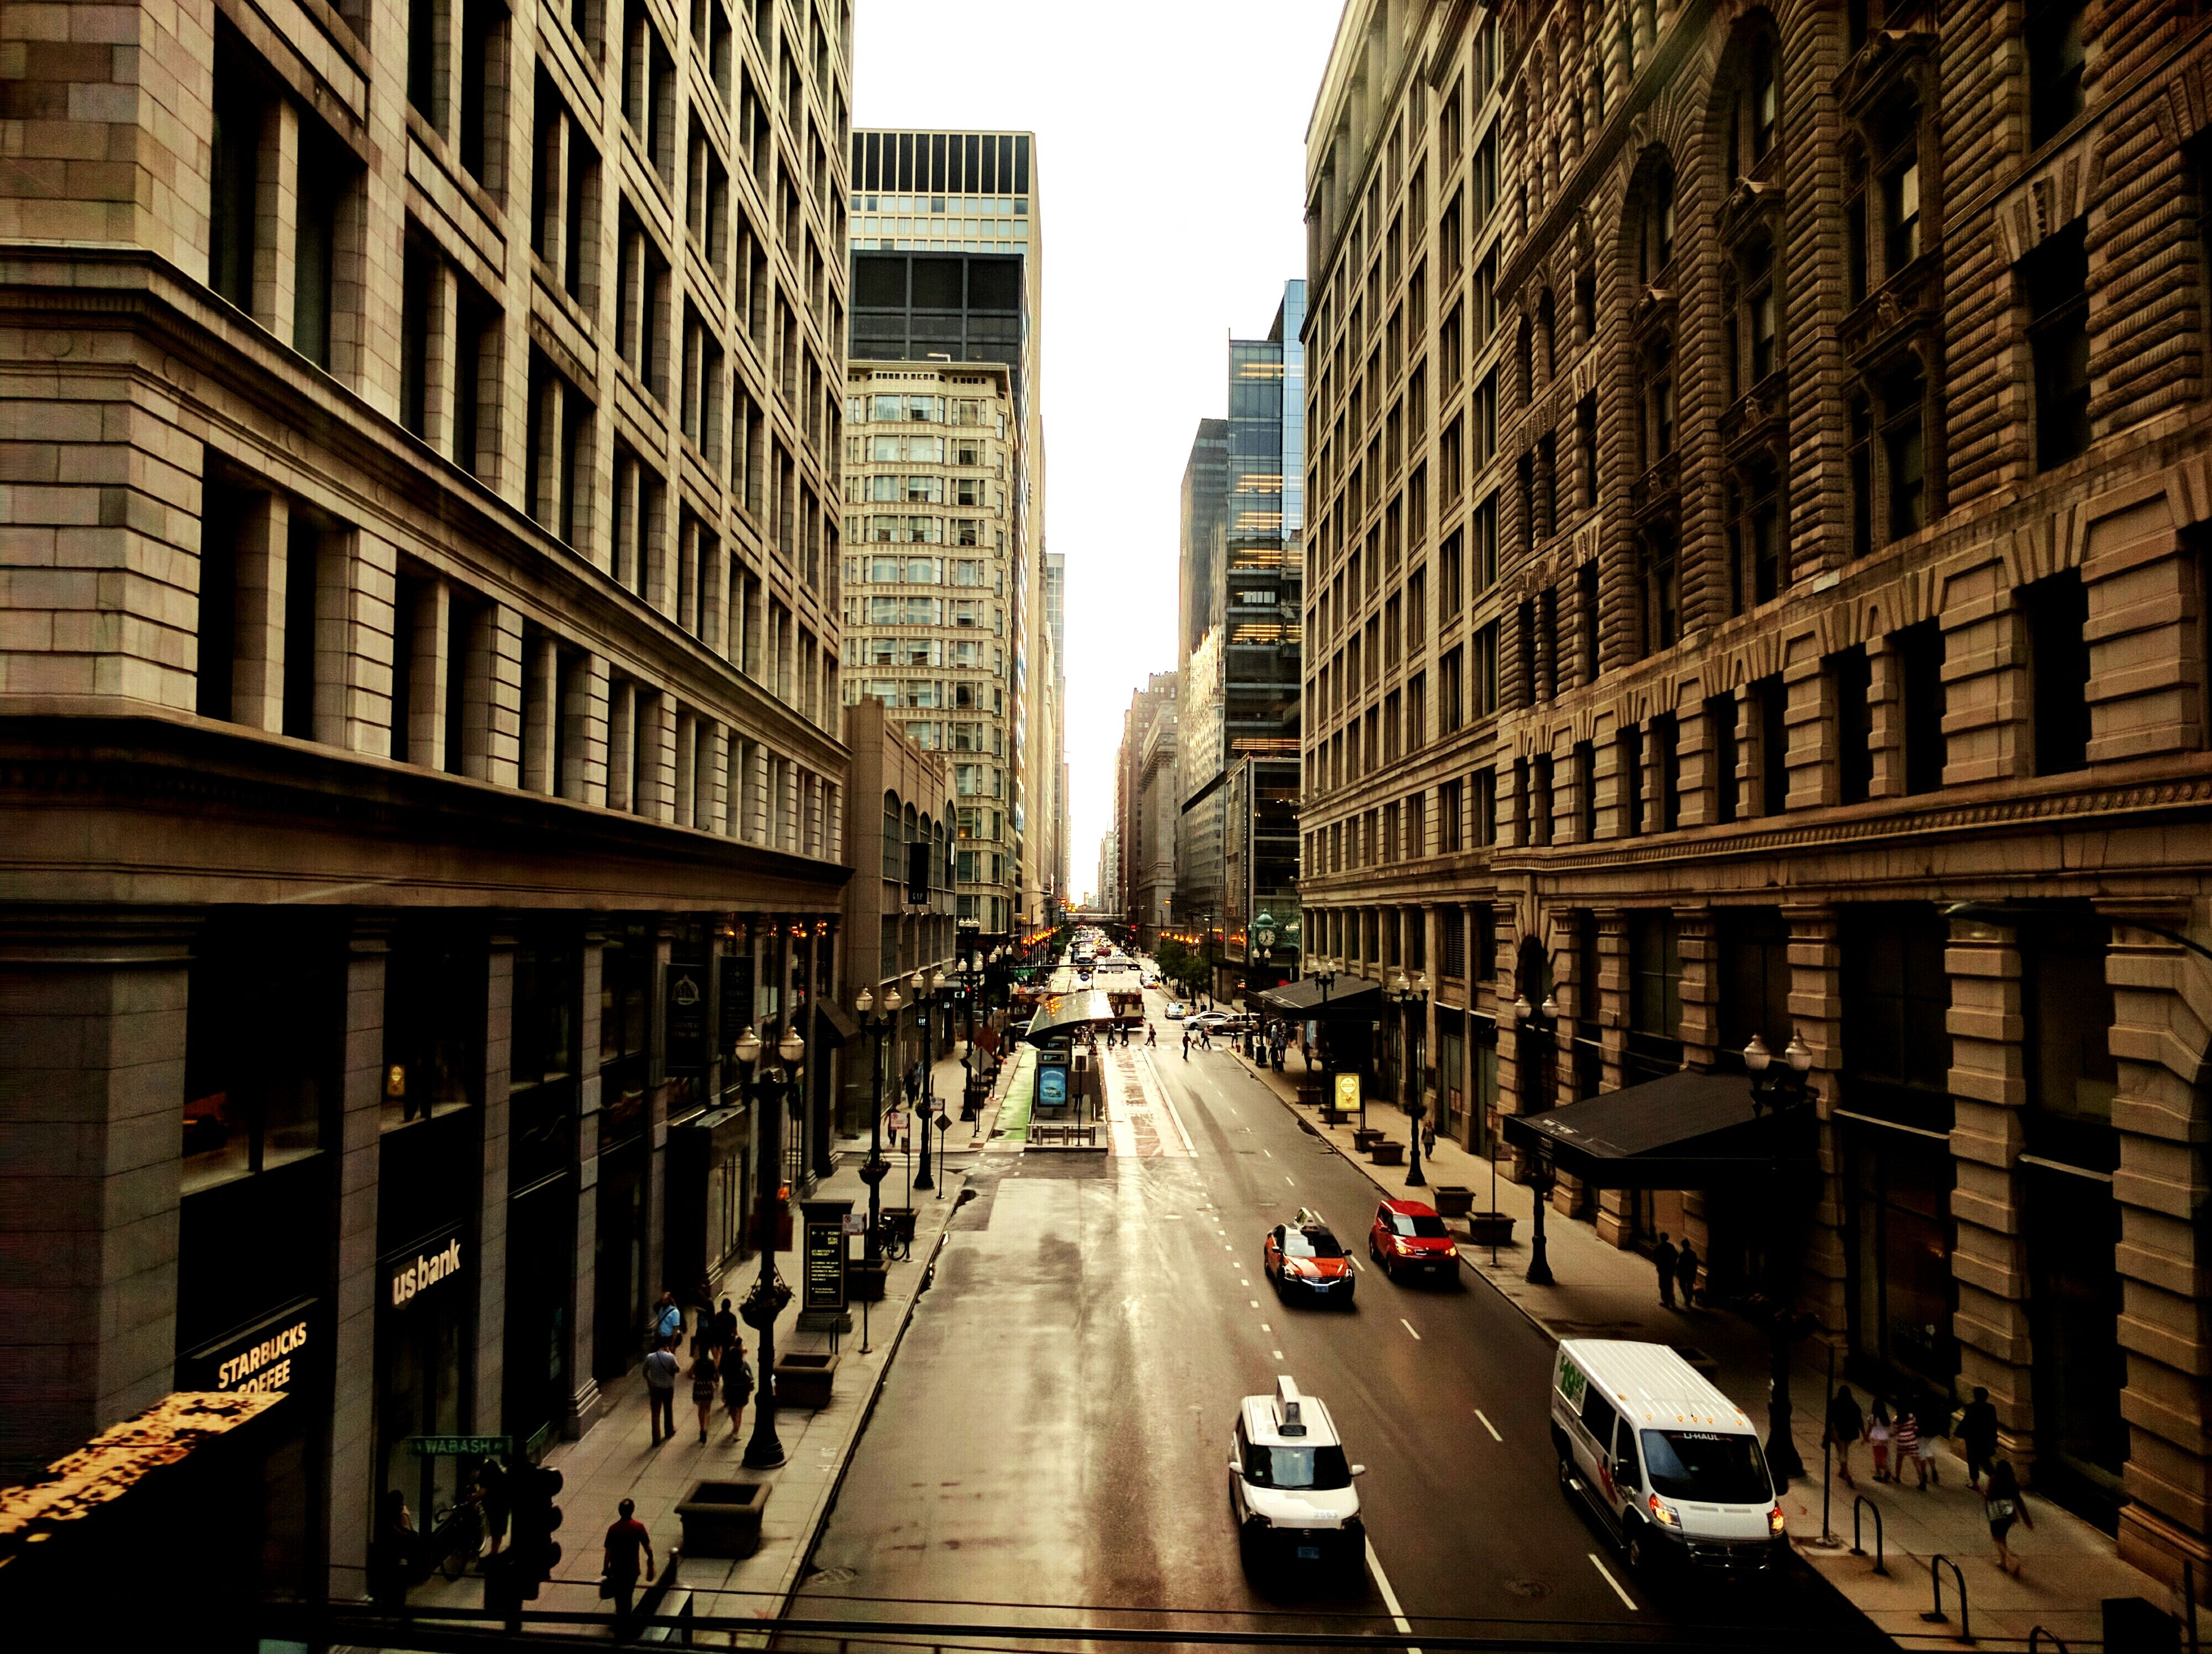 building exterior, architecture, transportation, built structure, car, land vehicle, city, mode of transport, street, the way forward, road, diminishing perspective, city street, city life, incidental people, traffic, building, vanishing point, road marking, vehicle